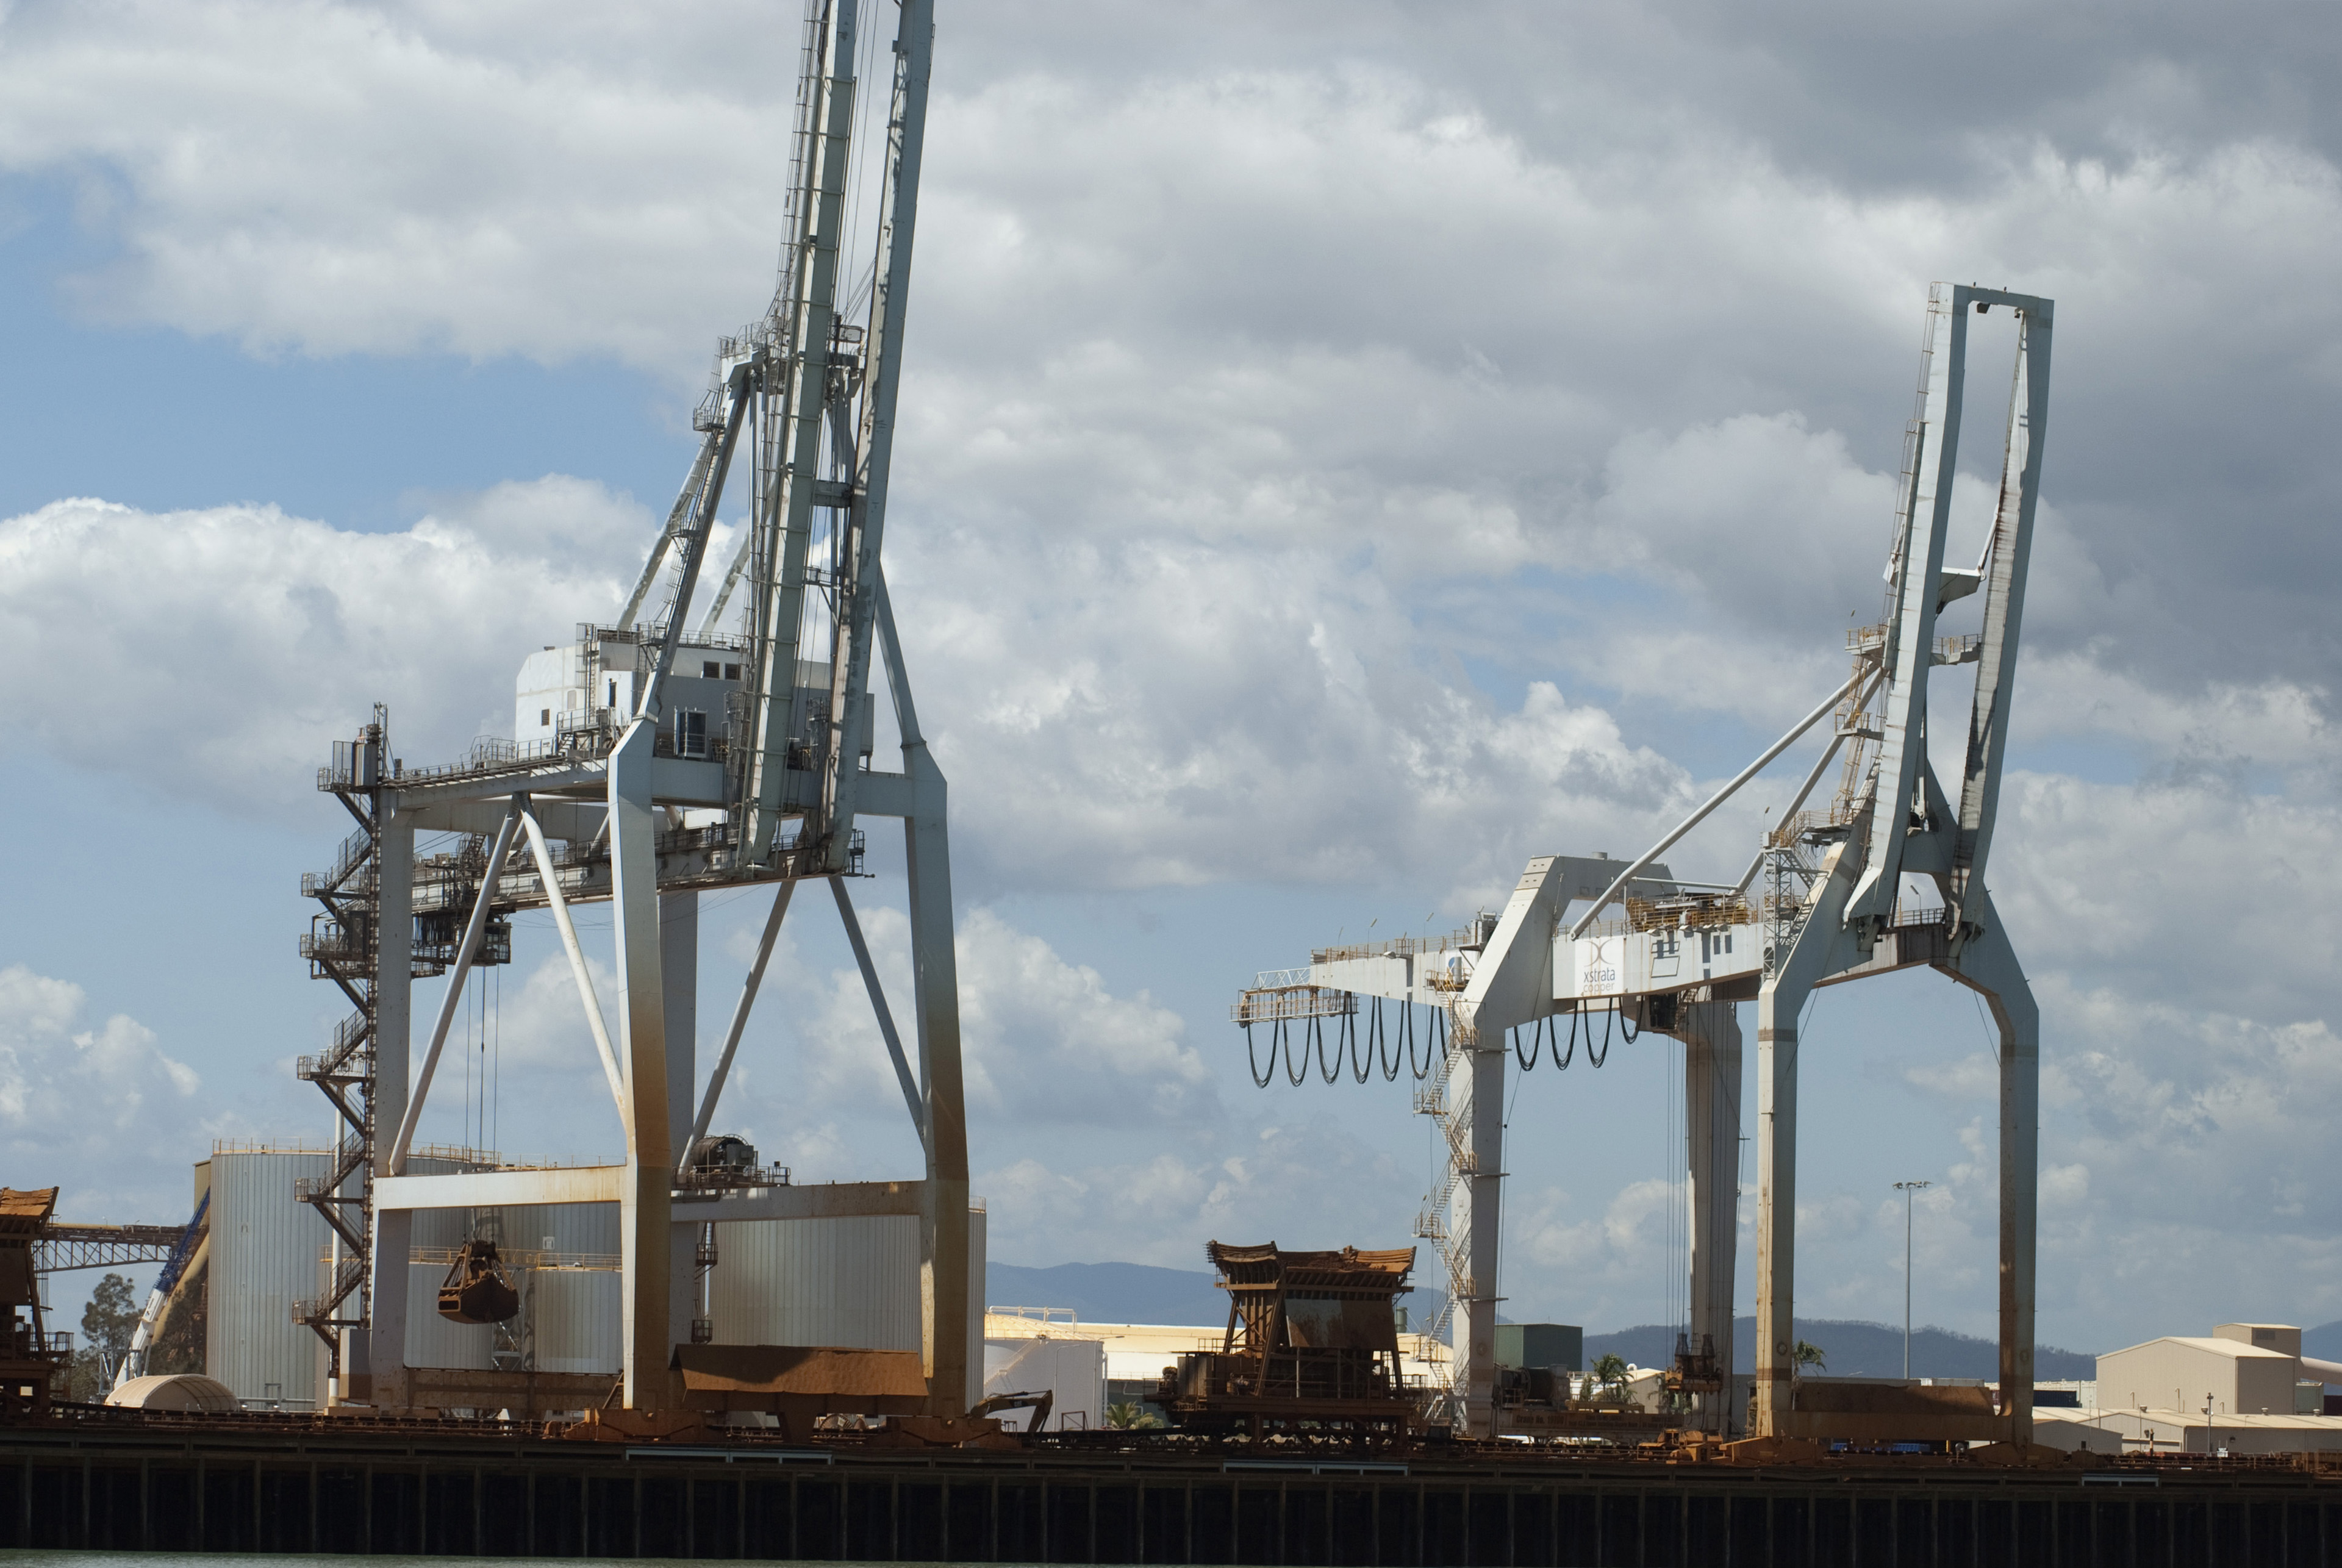 Detail of Loading Cranes at Coastal Shipping Terminal with Cloudy Blue Sky